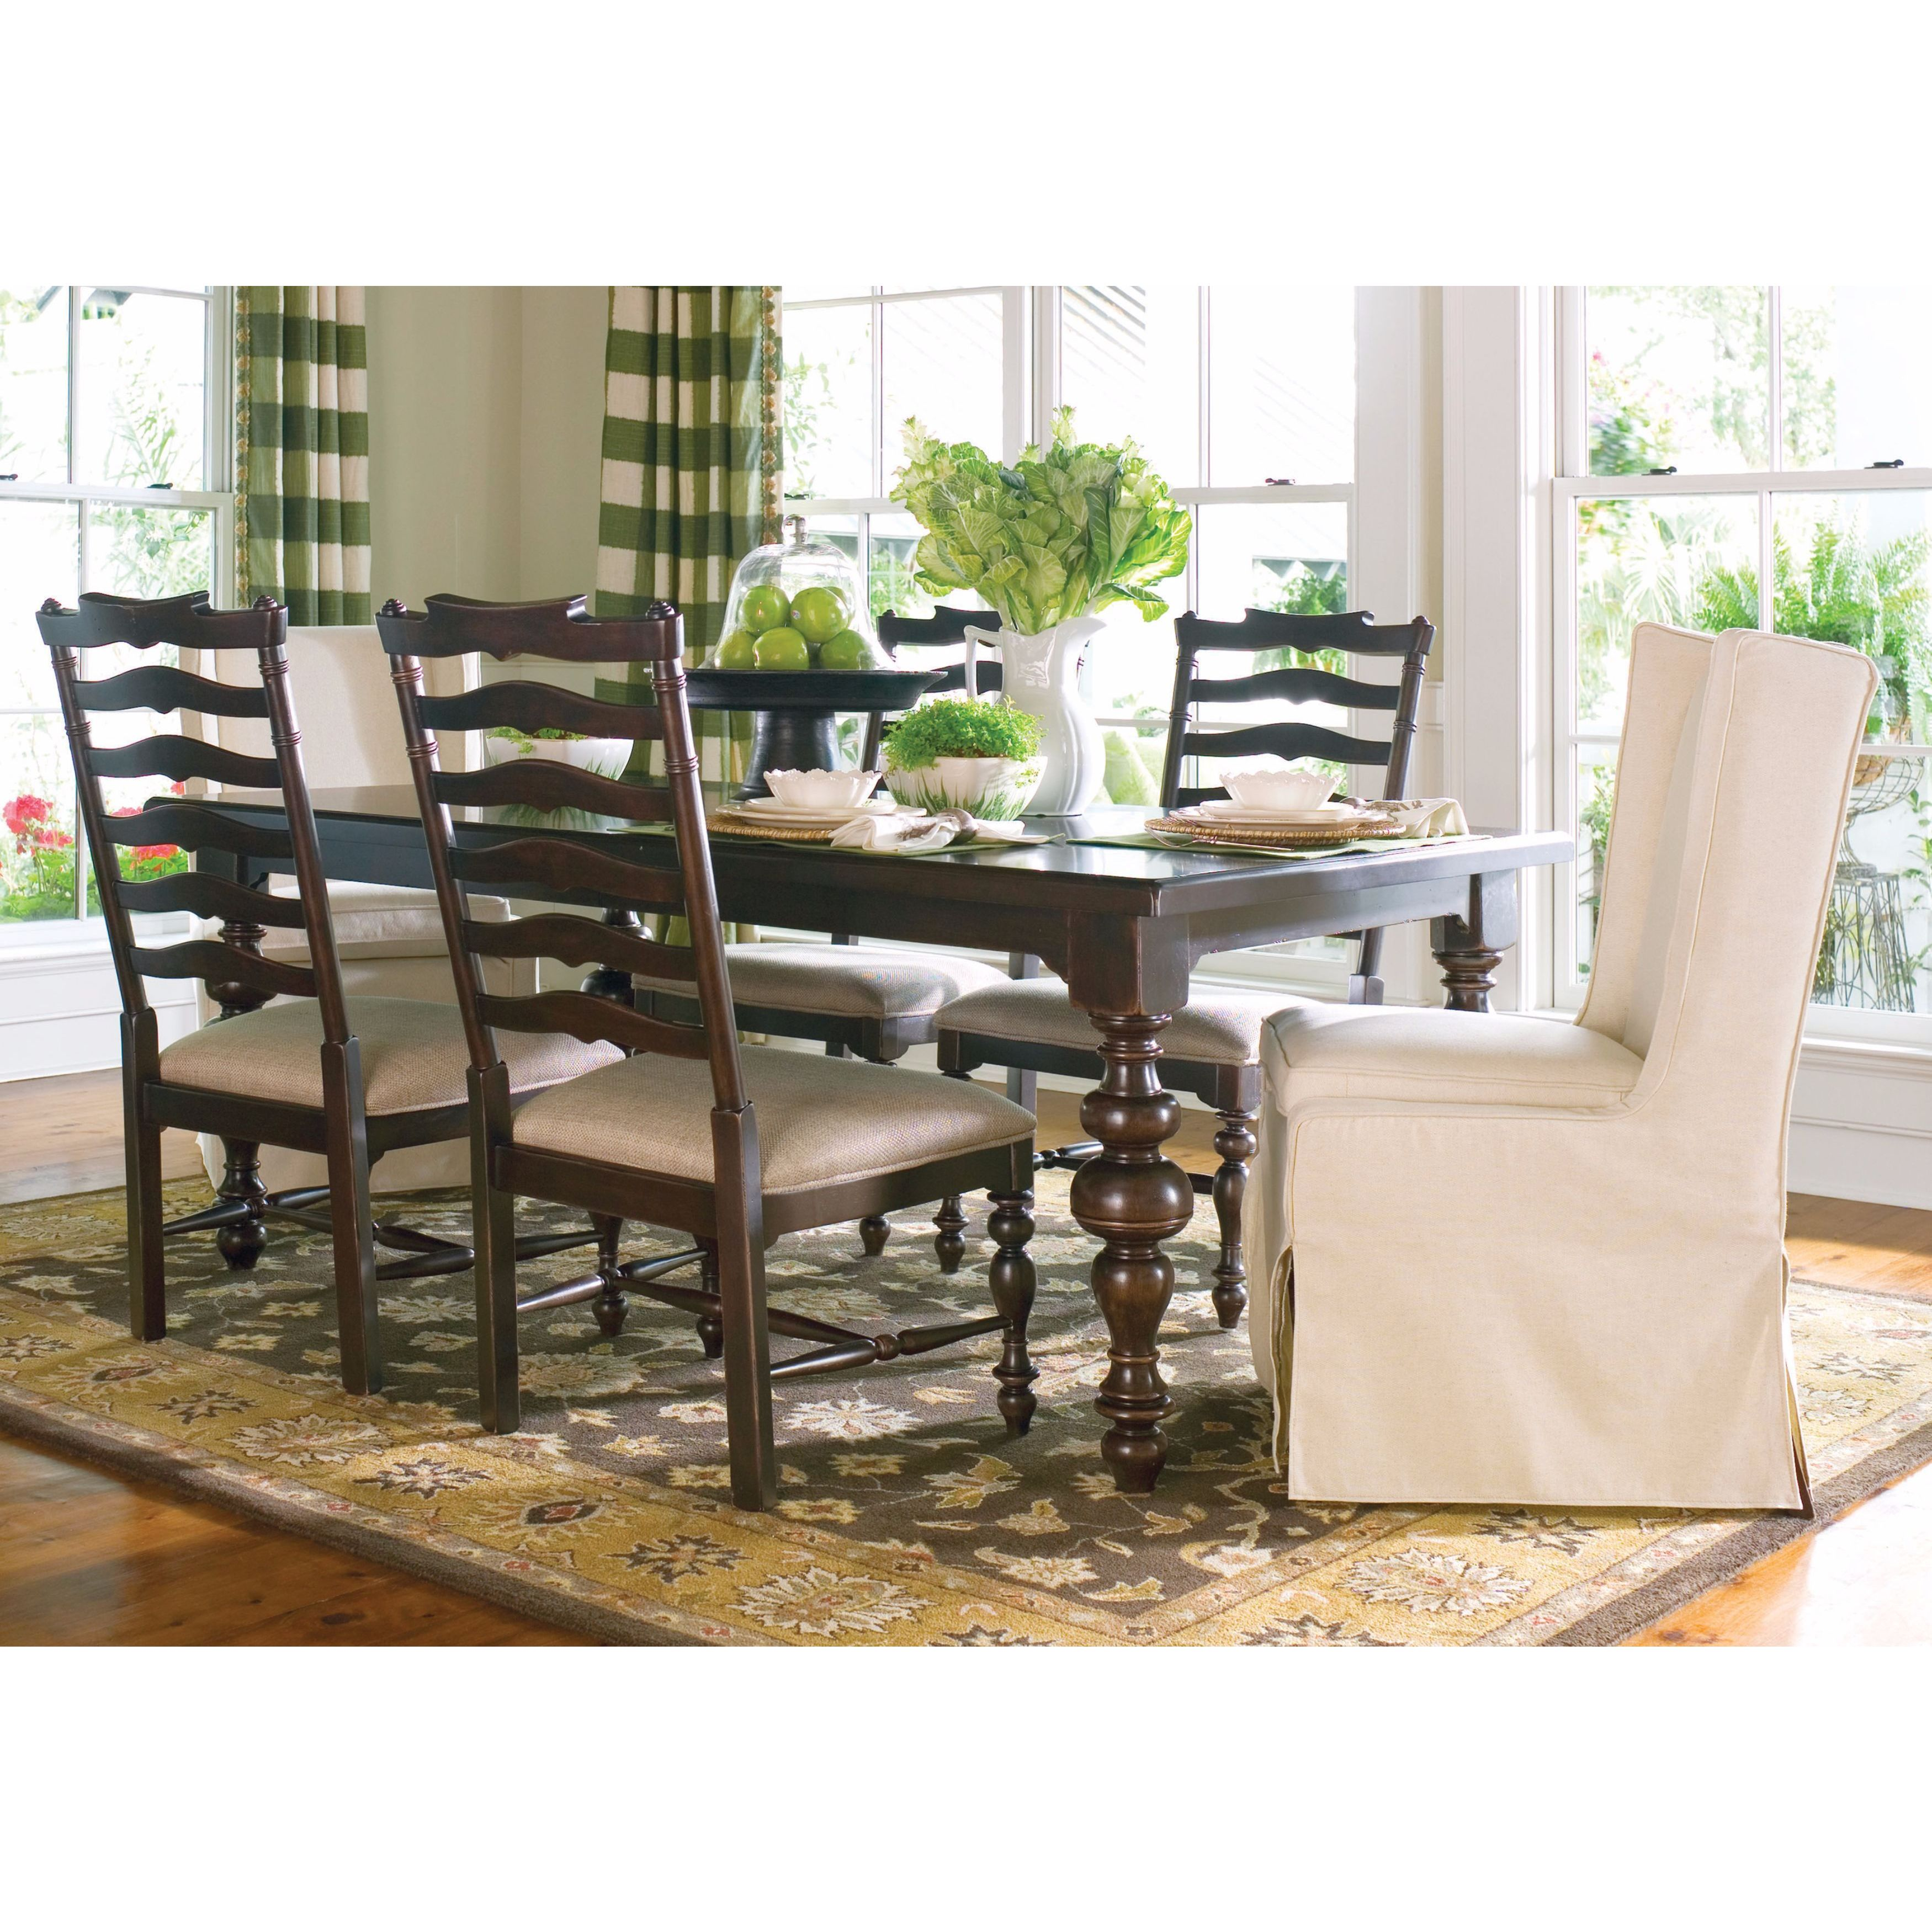 Image of: Shop Black Friday Deals On Paula Deen Home Paula S Table In Tobacco Finish Overstock 11623565